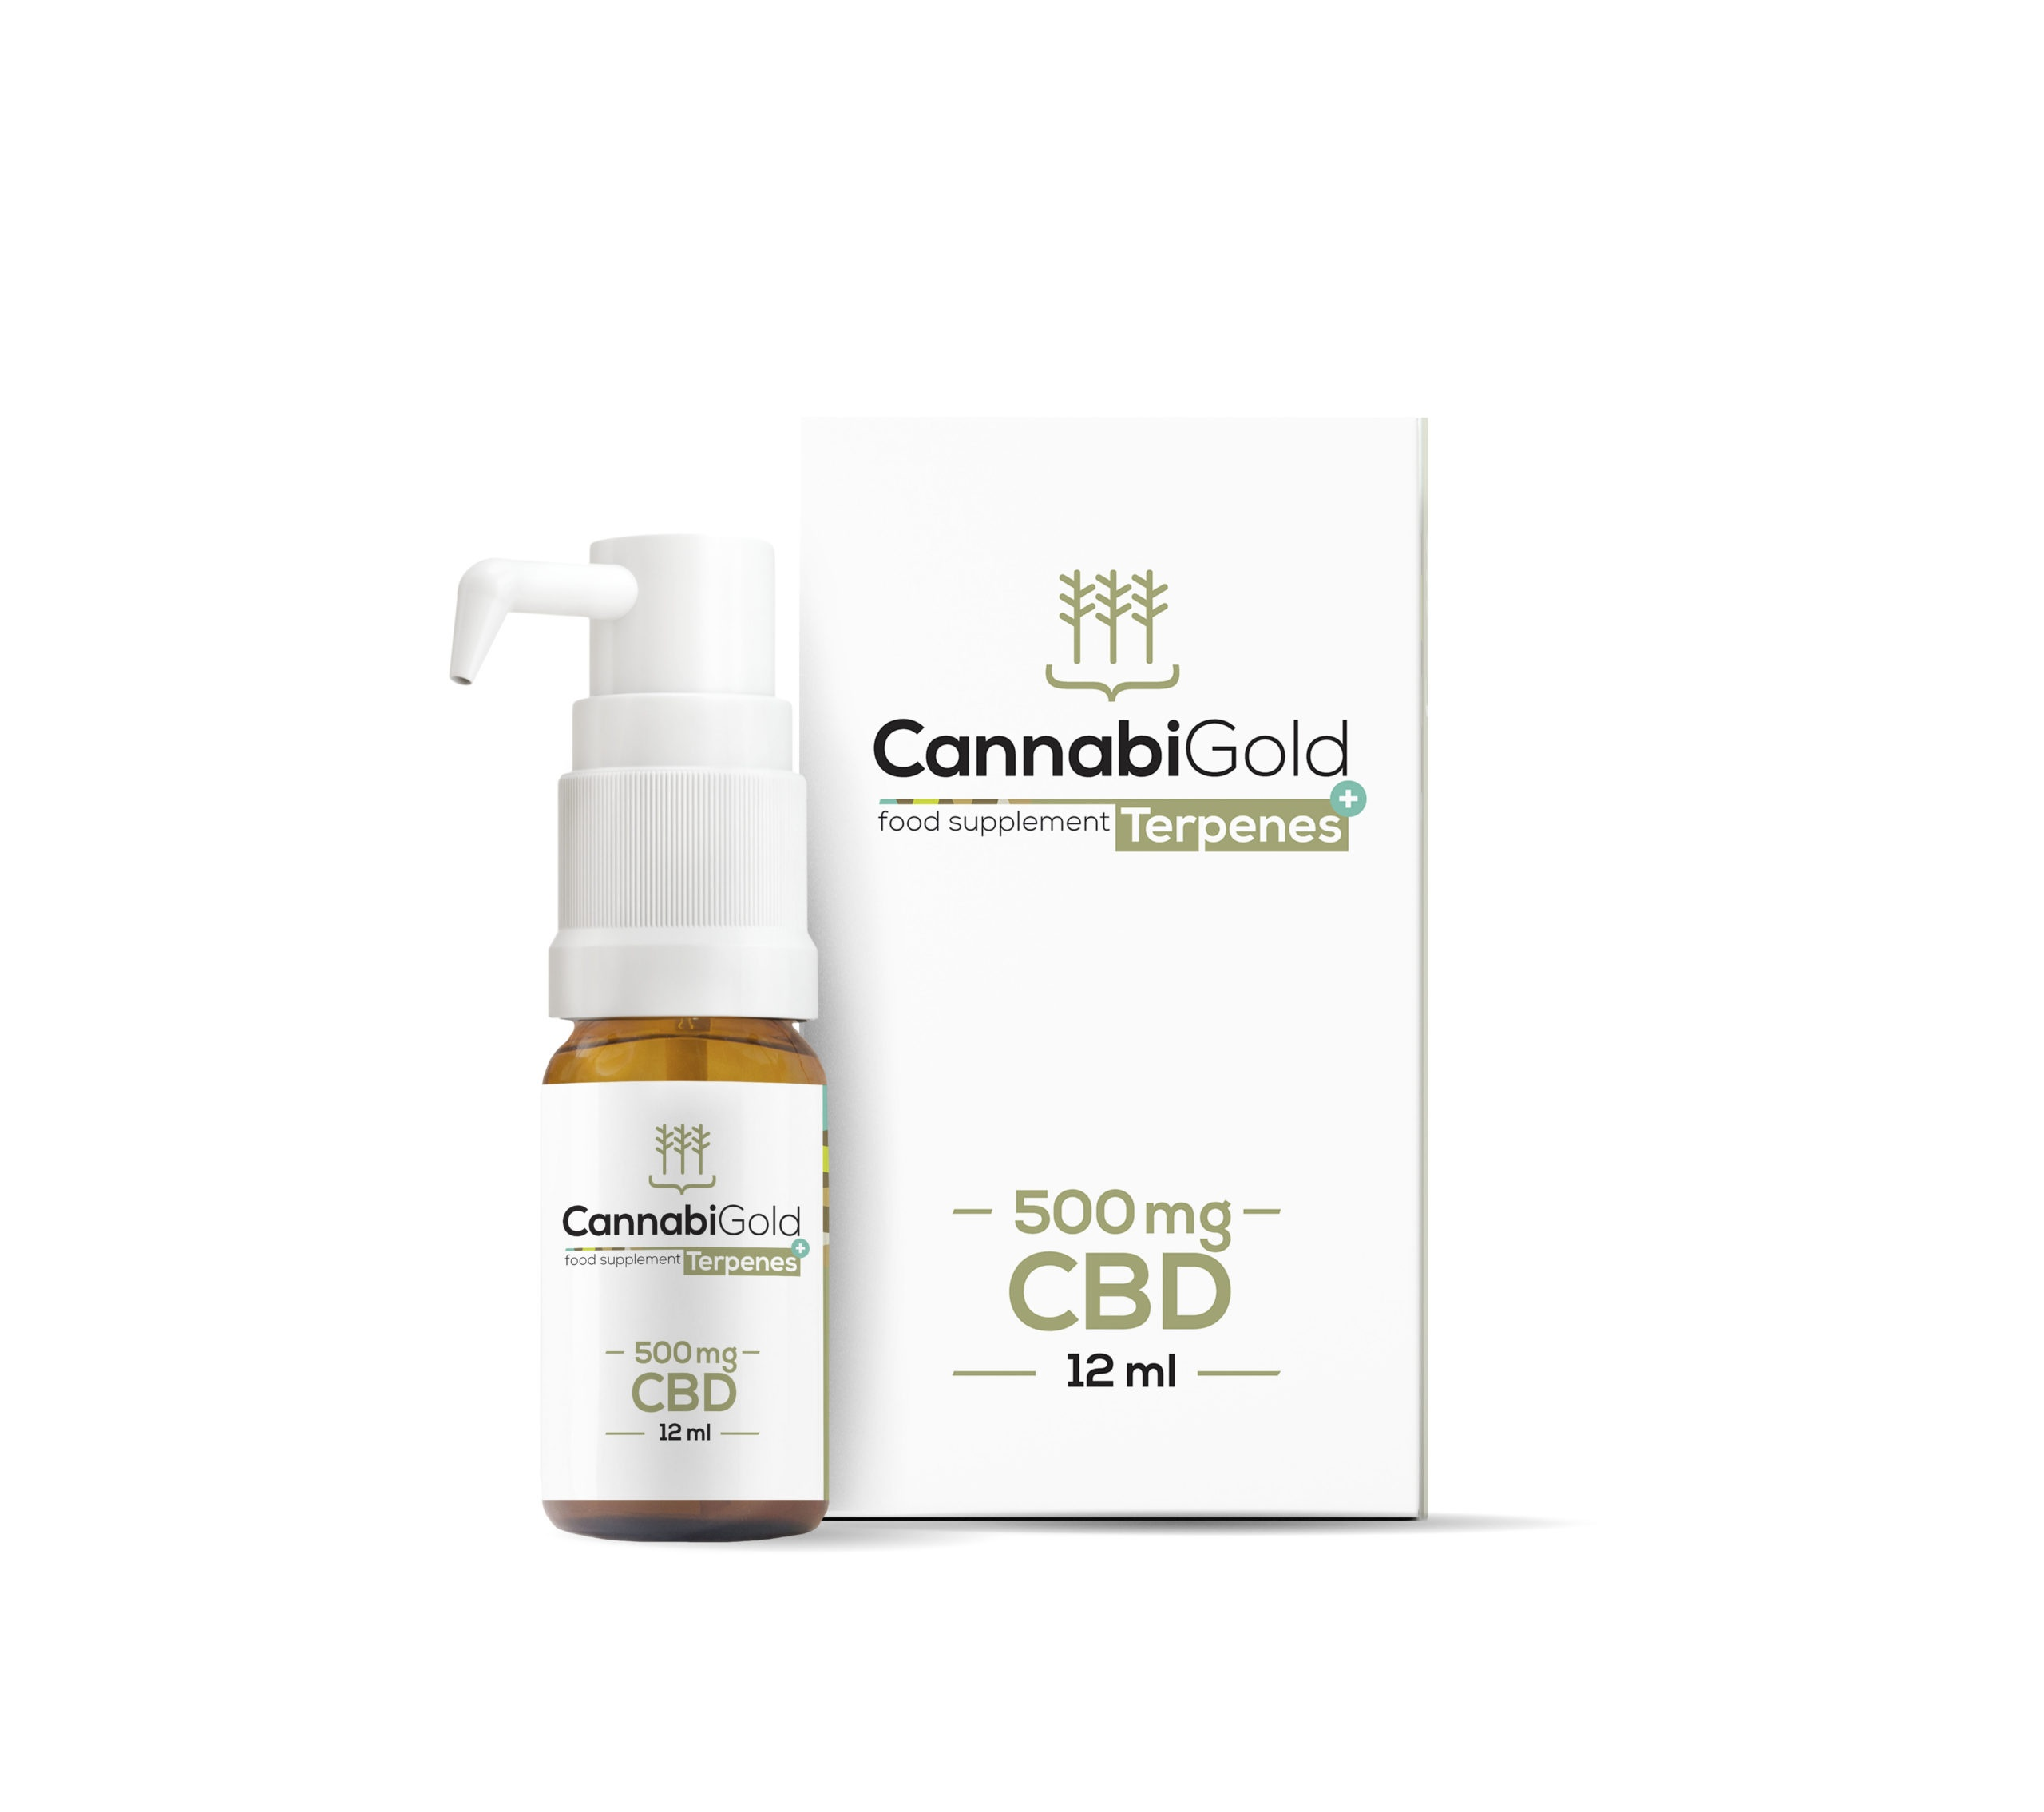 CannabiGold Terpenes+ 500 mg CBD